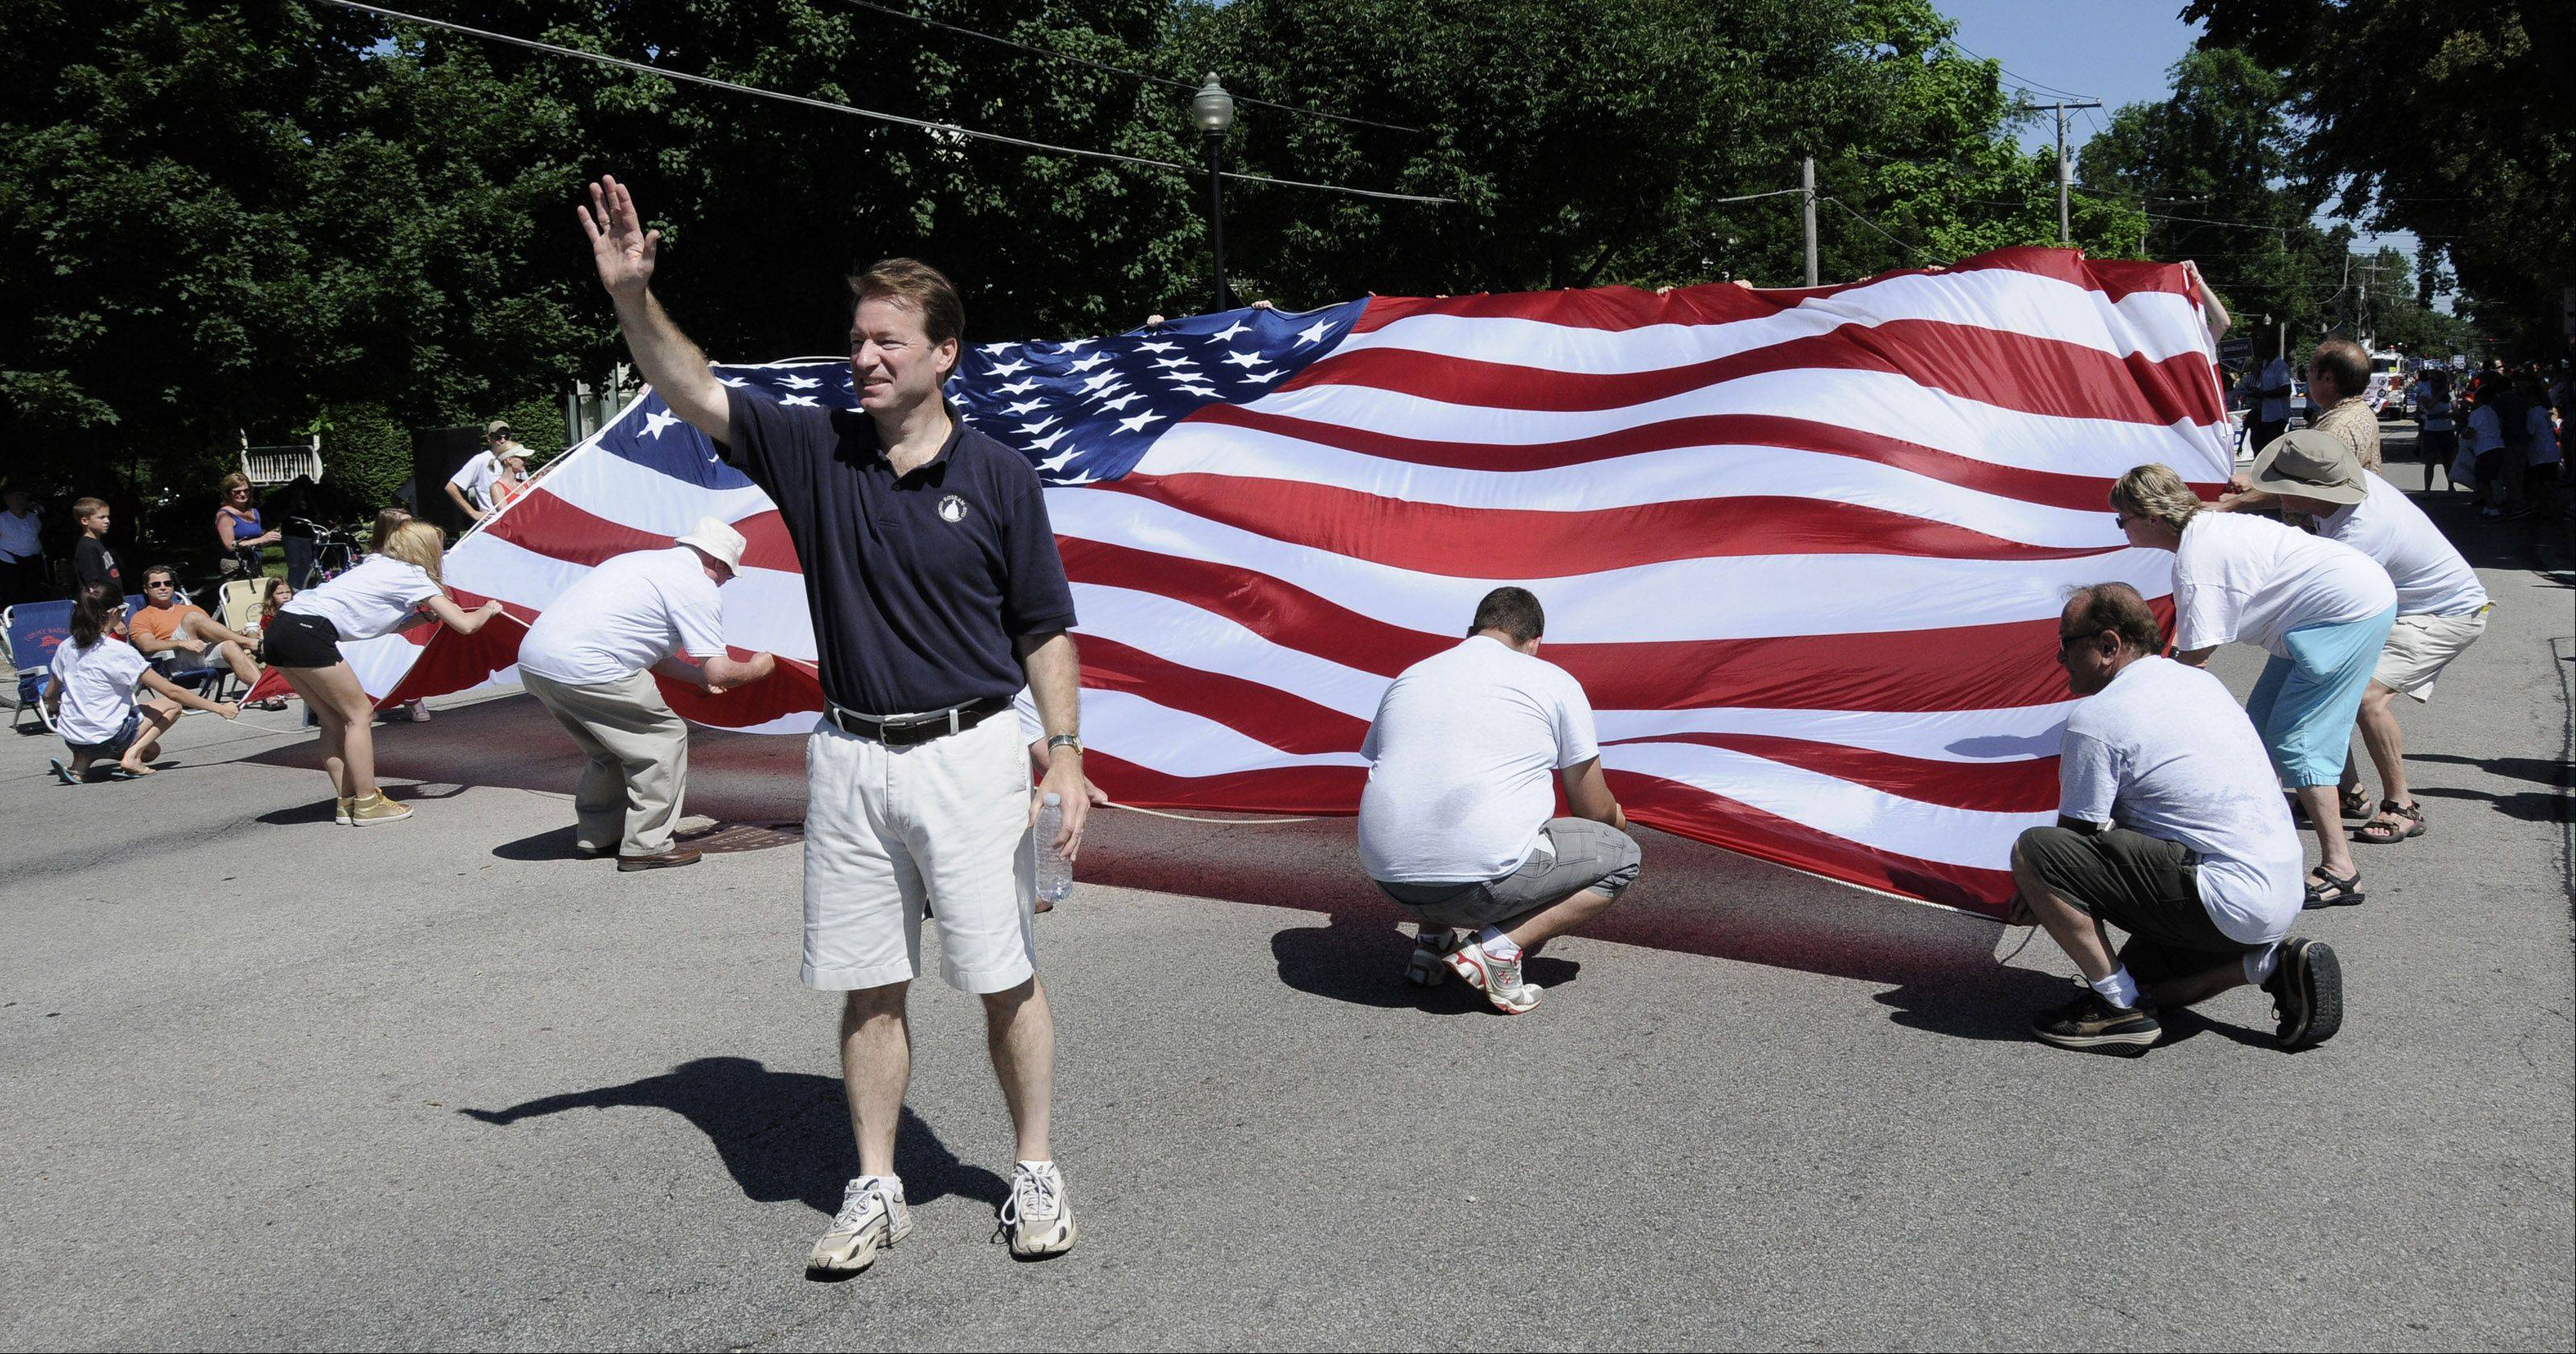 One of many politicians marching Monday, in Wheaton's Independence Day parade is Republican Congressmen Peter Roskam, who walked in front of a huge American flag carried by his friends and supporters.